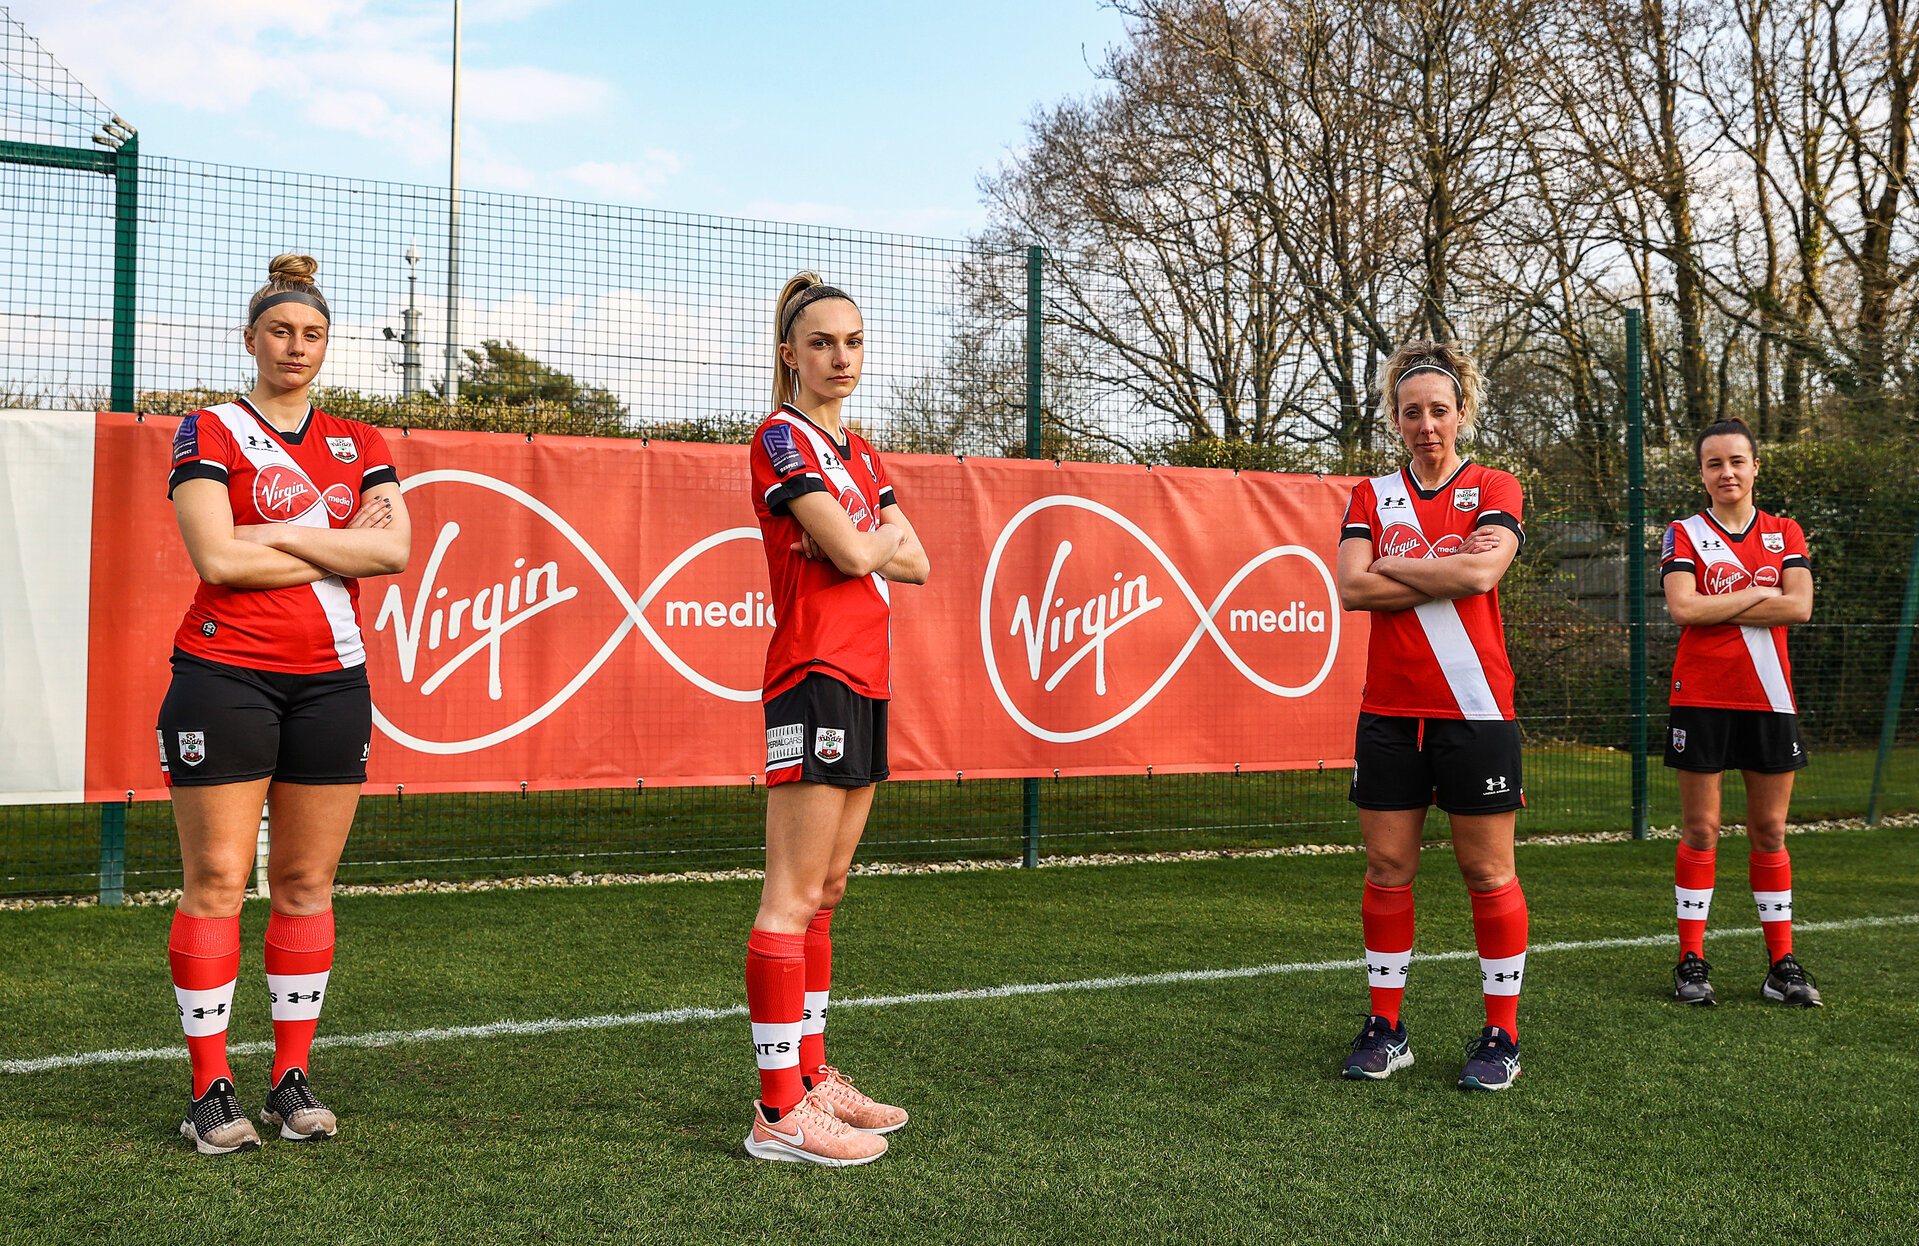 SOUTHAMPTON, ENGLAND - APRIL 14: Southampton FC Women's team pictured at the Staplewood Campus on April 14, 2021 in Southampton, England. (Photo by Matt Watson/Southampton FC via Getty Images)